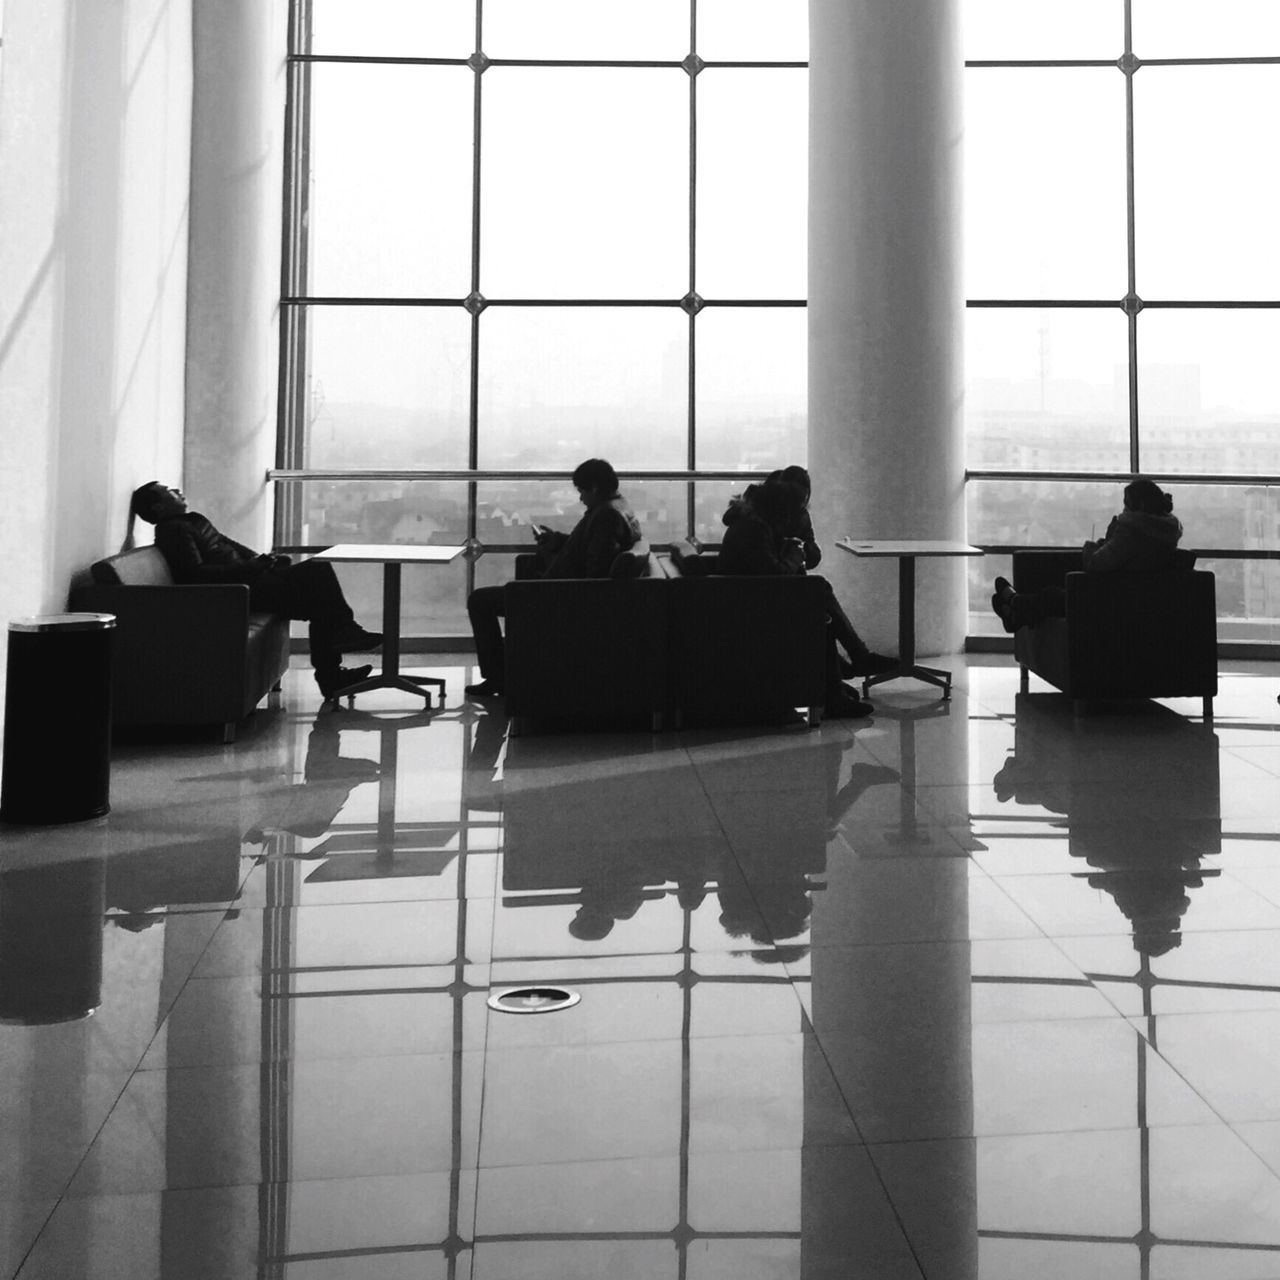 window, indoors, reflection, sitting, real people, table, chair, men, day, silhouette, architectural column, architecture, built structure, women, airport departure area, people